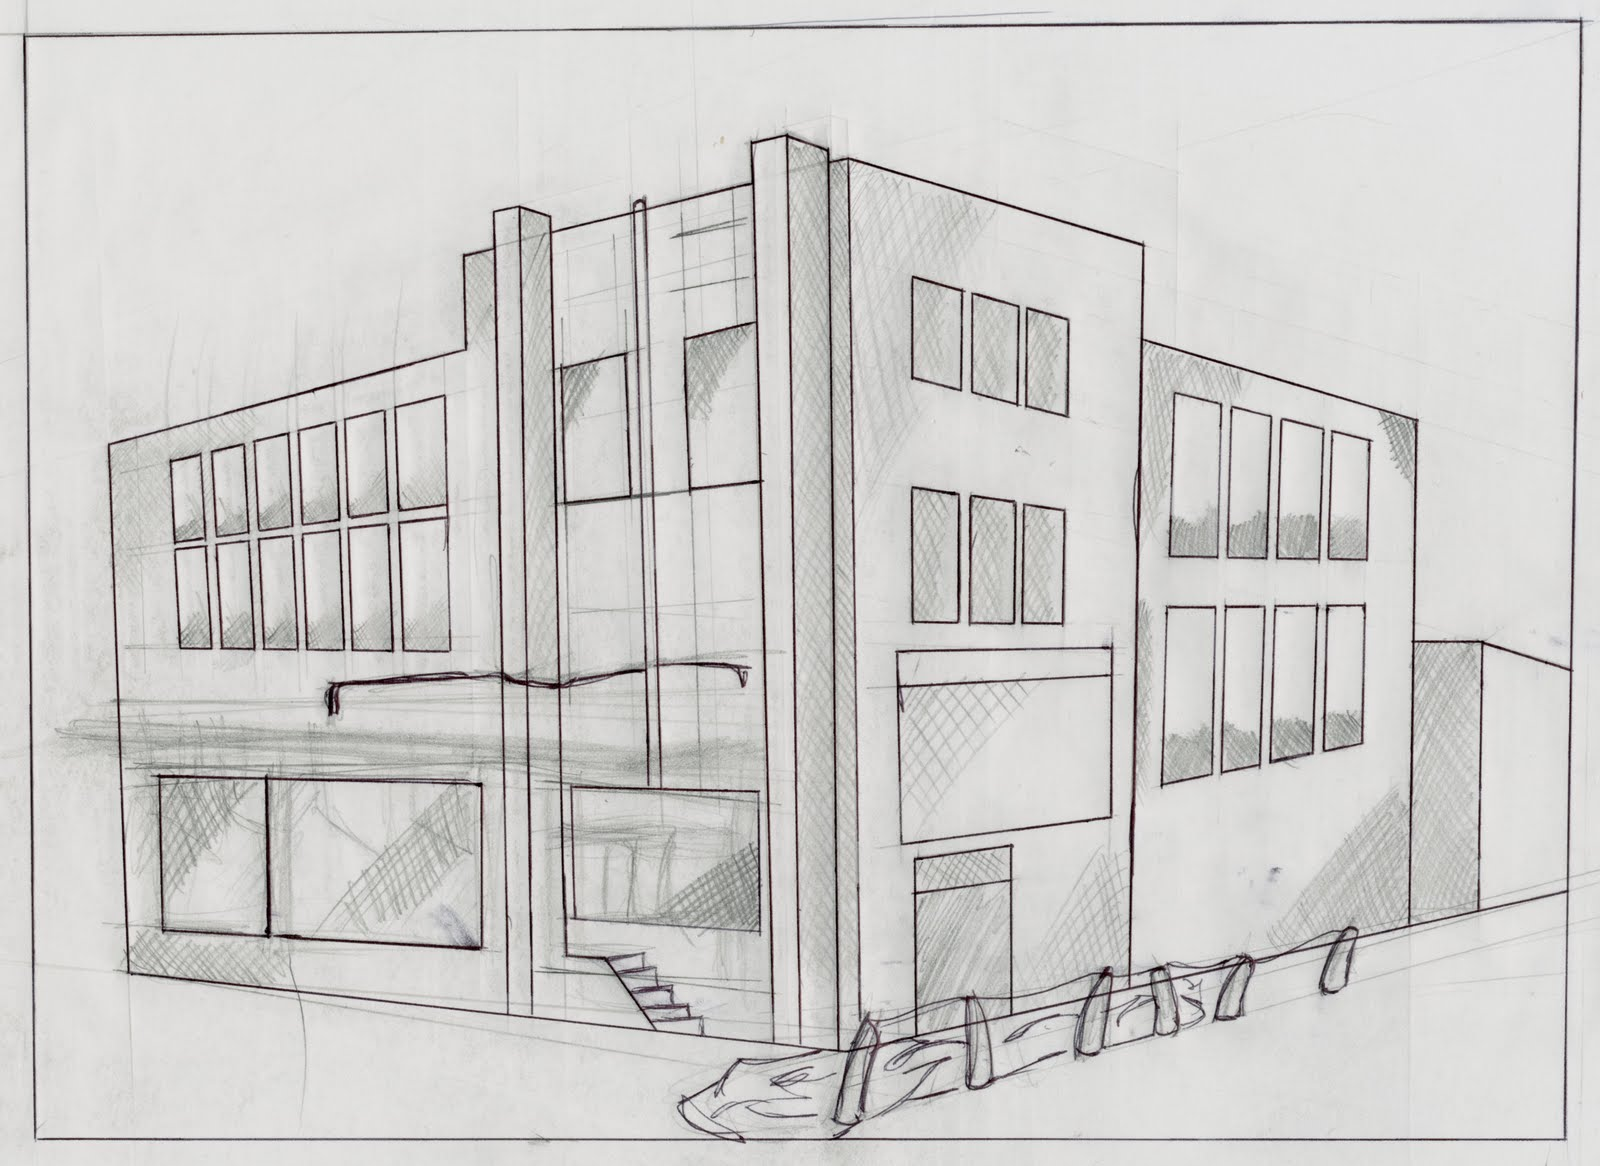 2 Point Perspective Building Drawing http://anthonyhandy.blogspot.com/2011/08/building-assignment-perspective.html